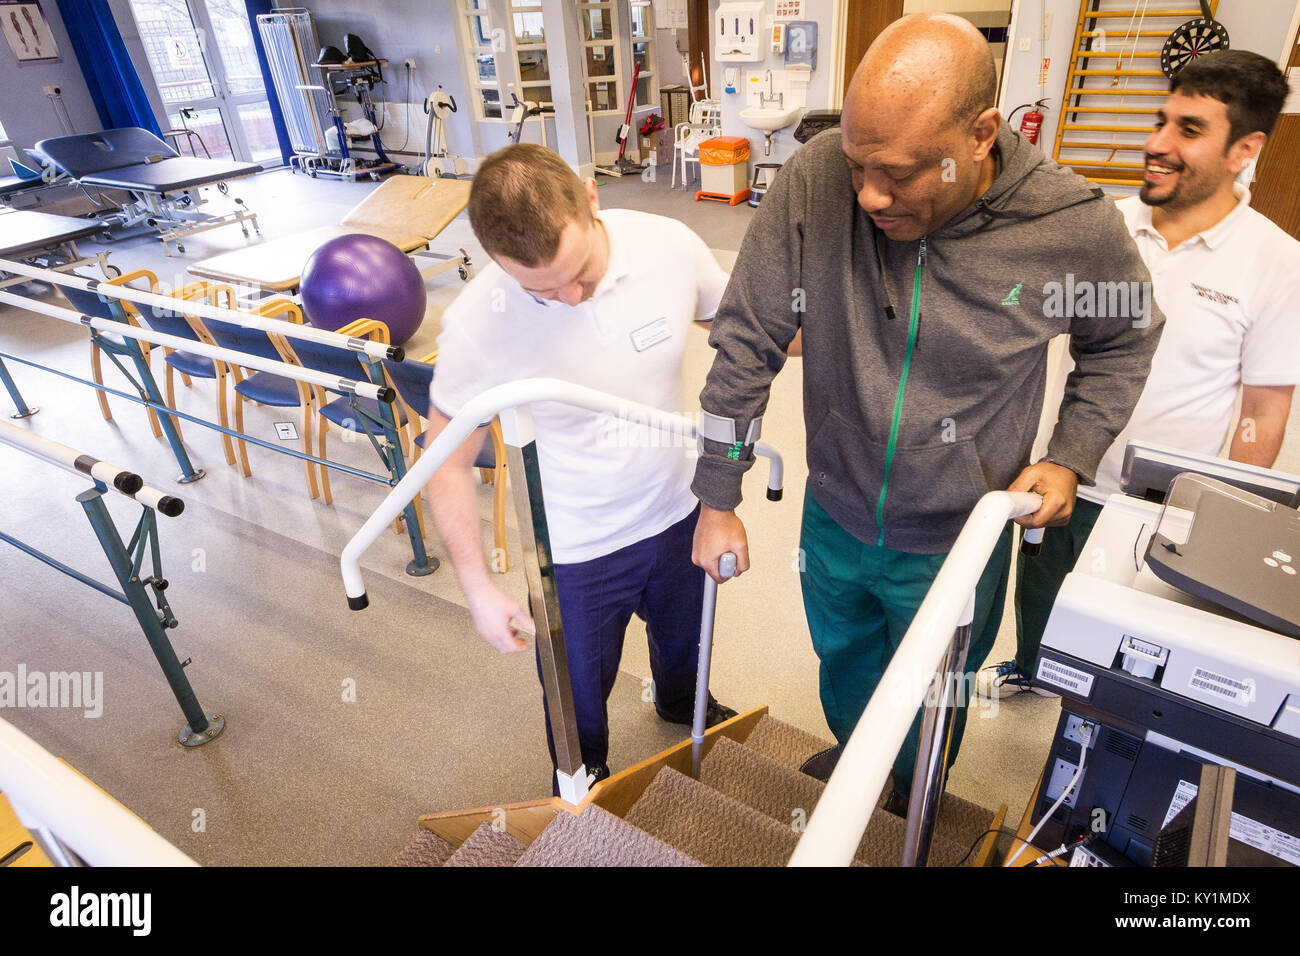 Magnolia Unit, Enfield Health. A short-term in-patient service focusing on preventing avoidable admissions to acute - Stock Image